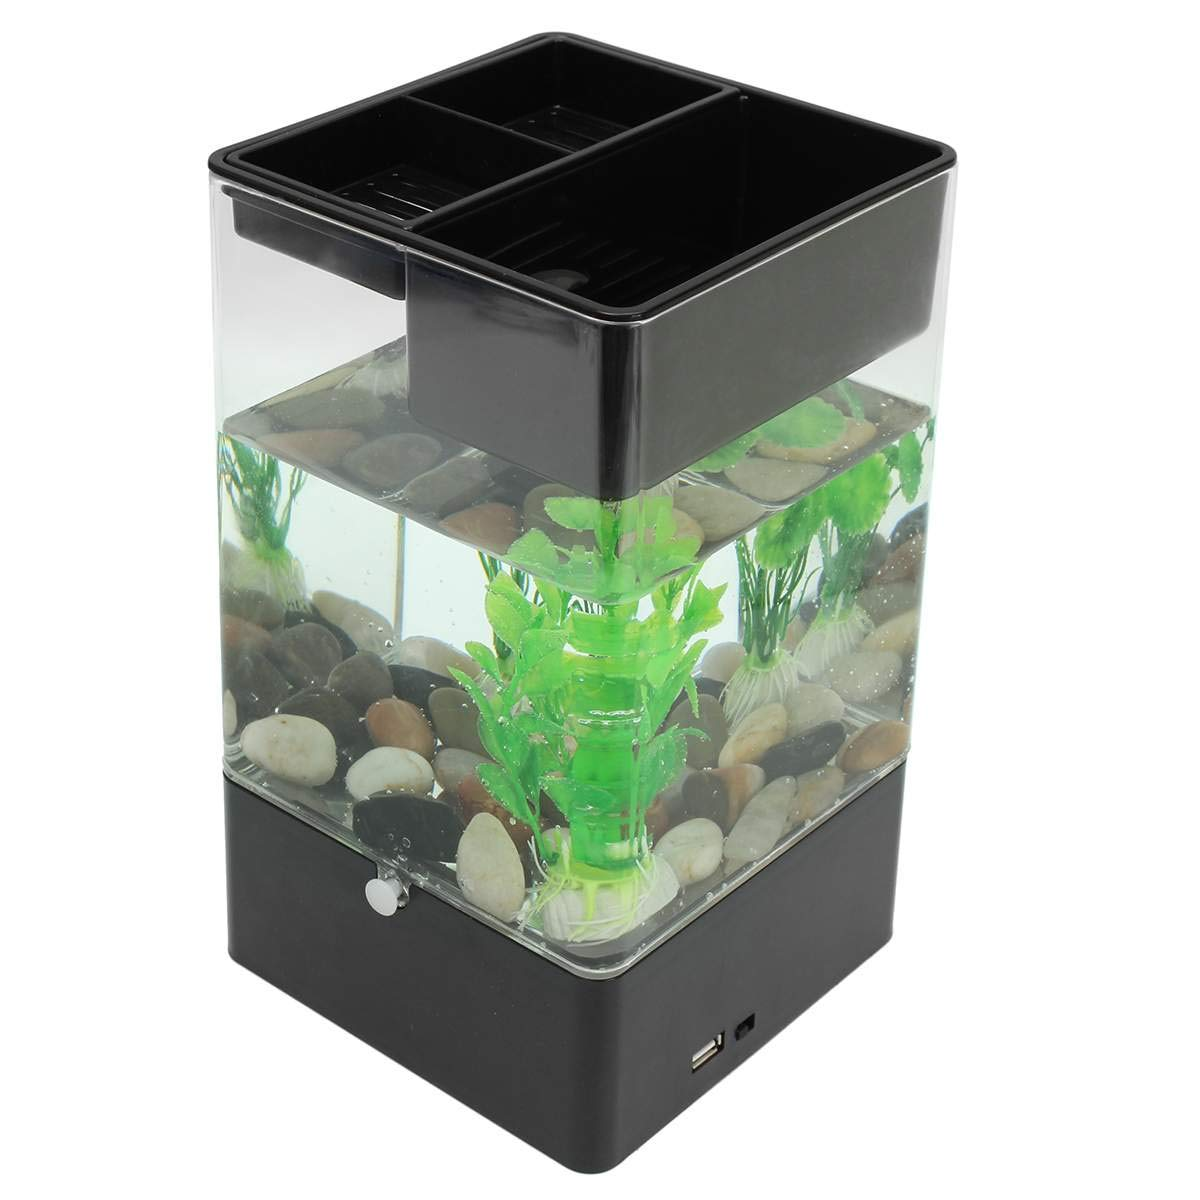 USB Desktop Mini Fish/Small Fry Tank USB, Hydroponic Fish Tank Acrylic Aquarium Fish Bowl for Indoor and Outdoor Use by M-TANK